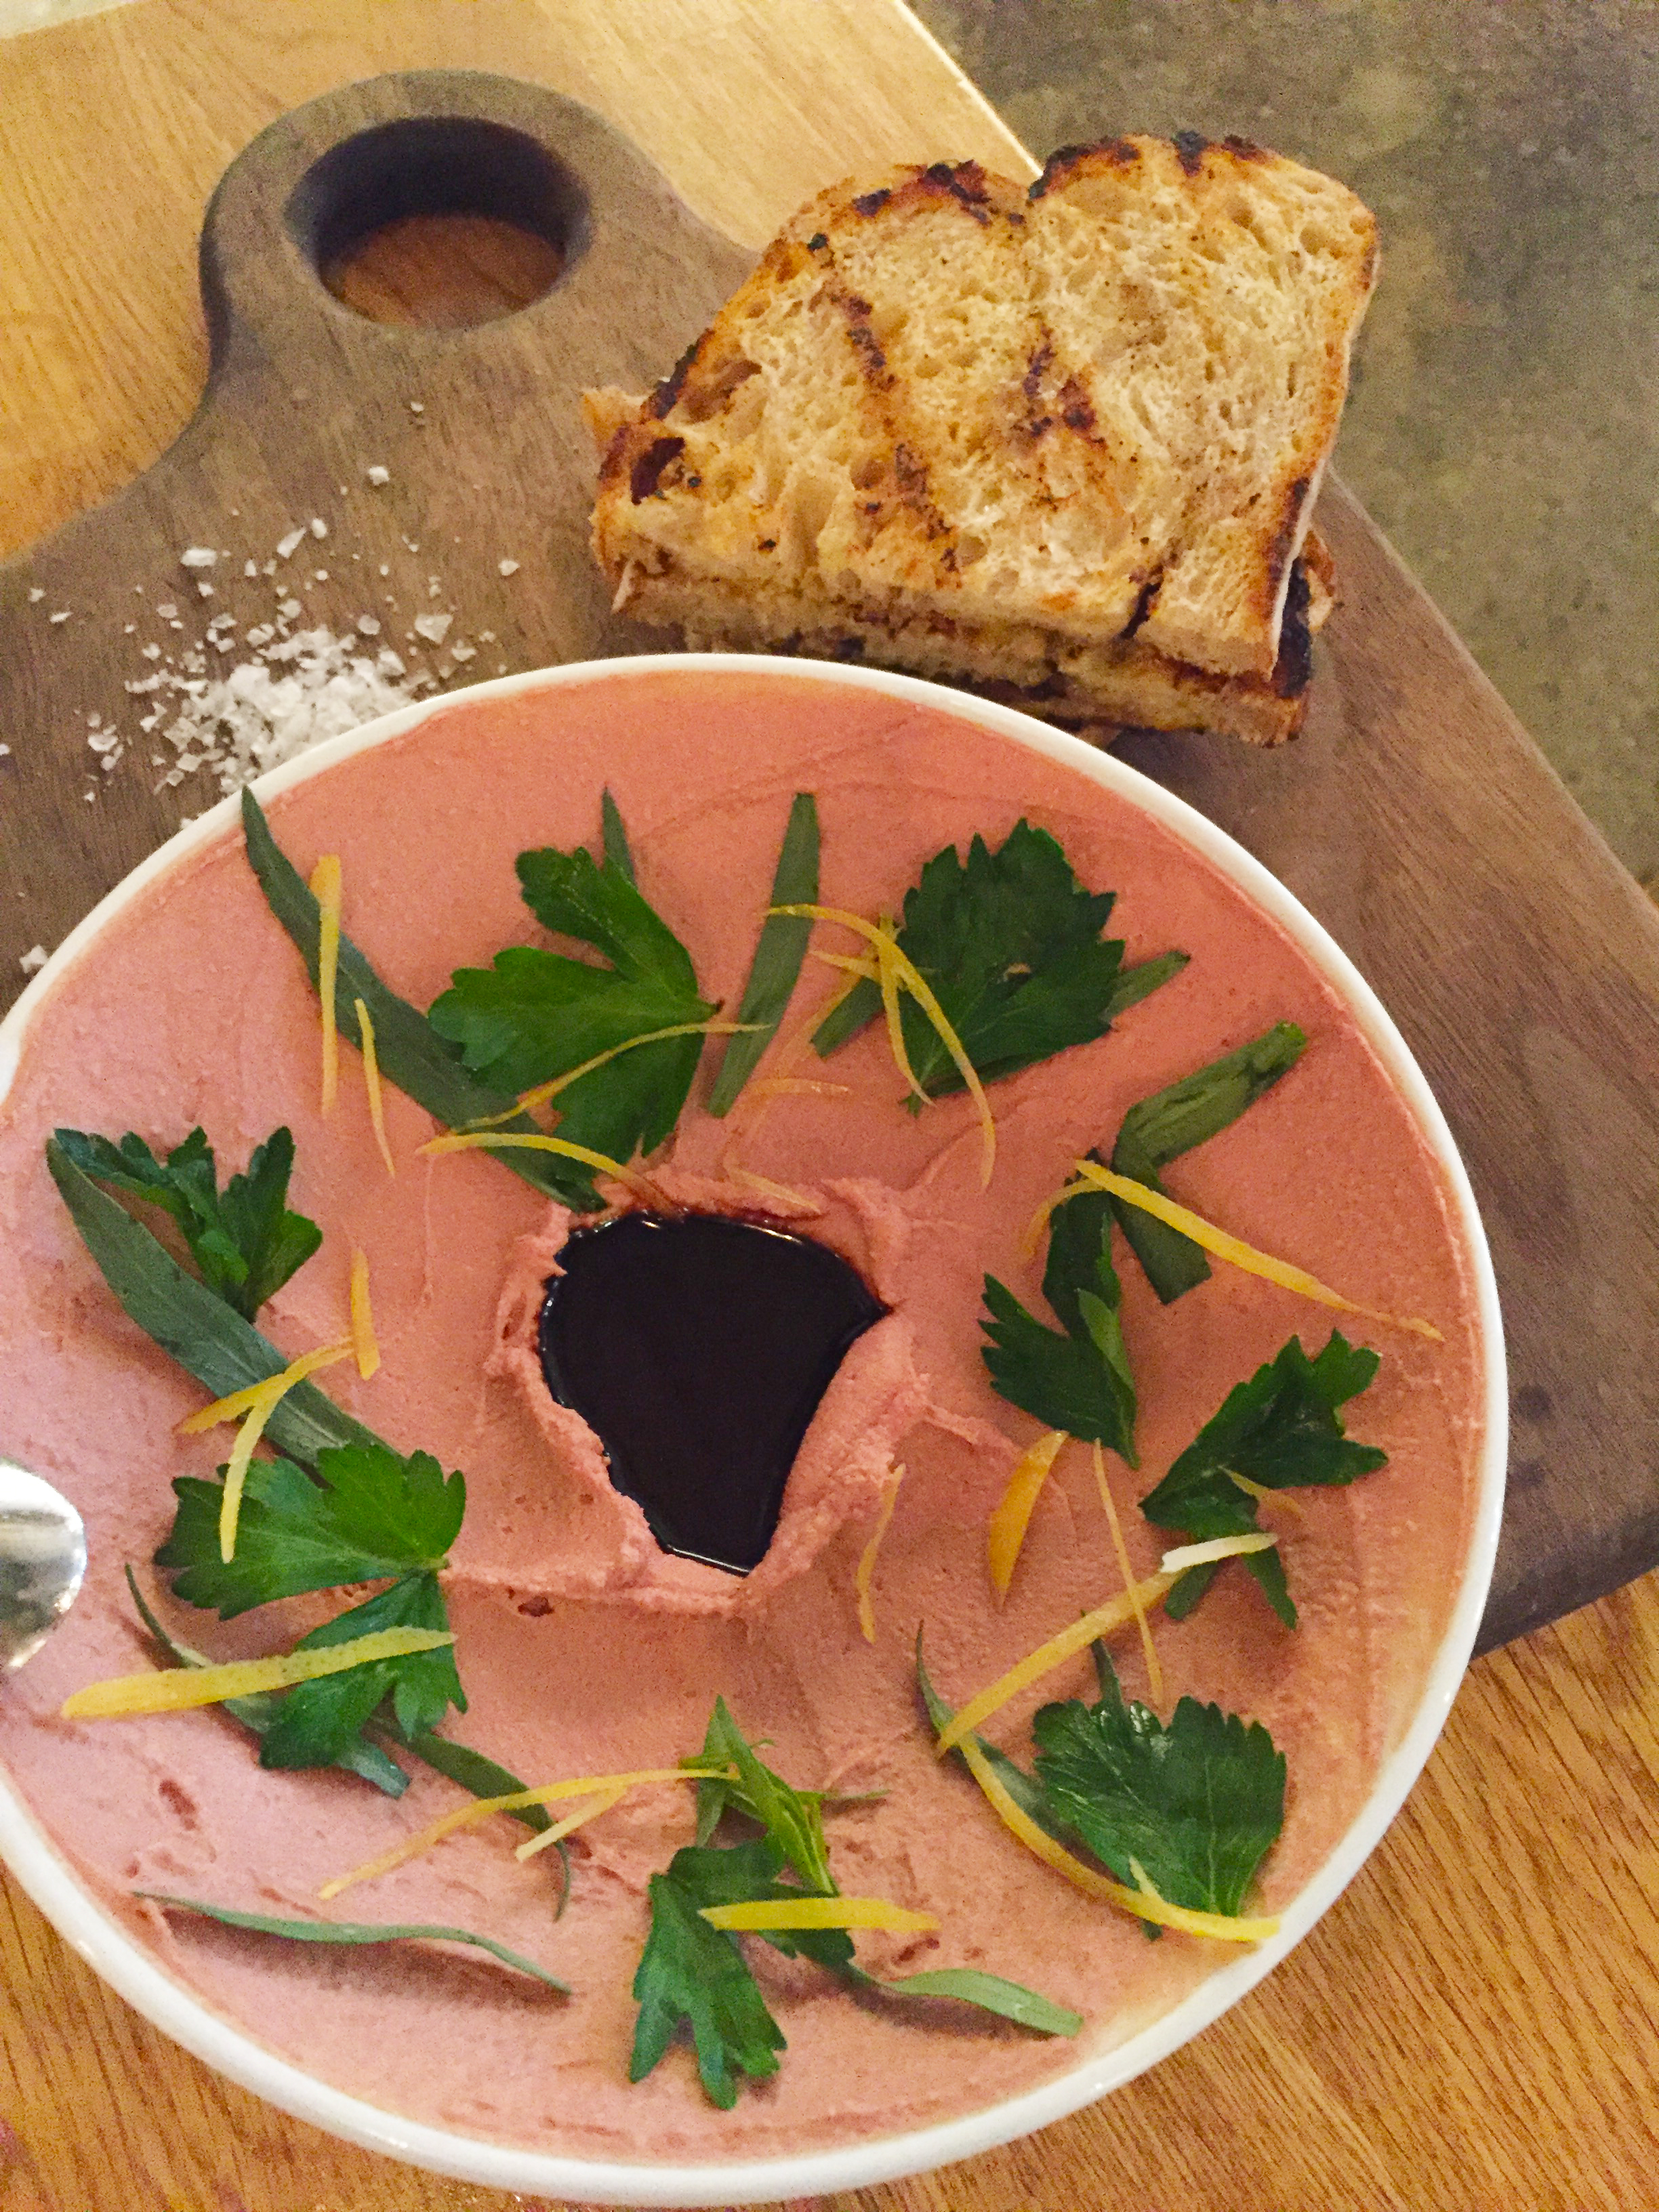 Smoked Chicken Liver Pate with preserved lemon,herb salad, and grilled bread.